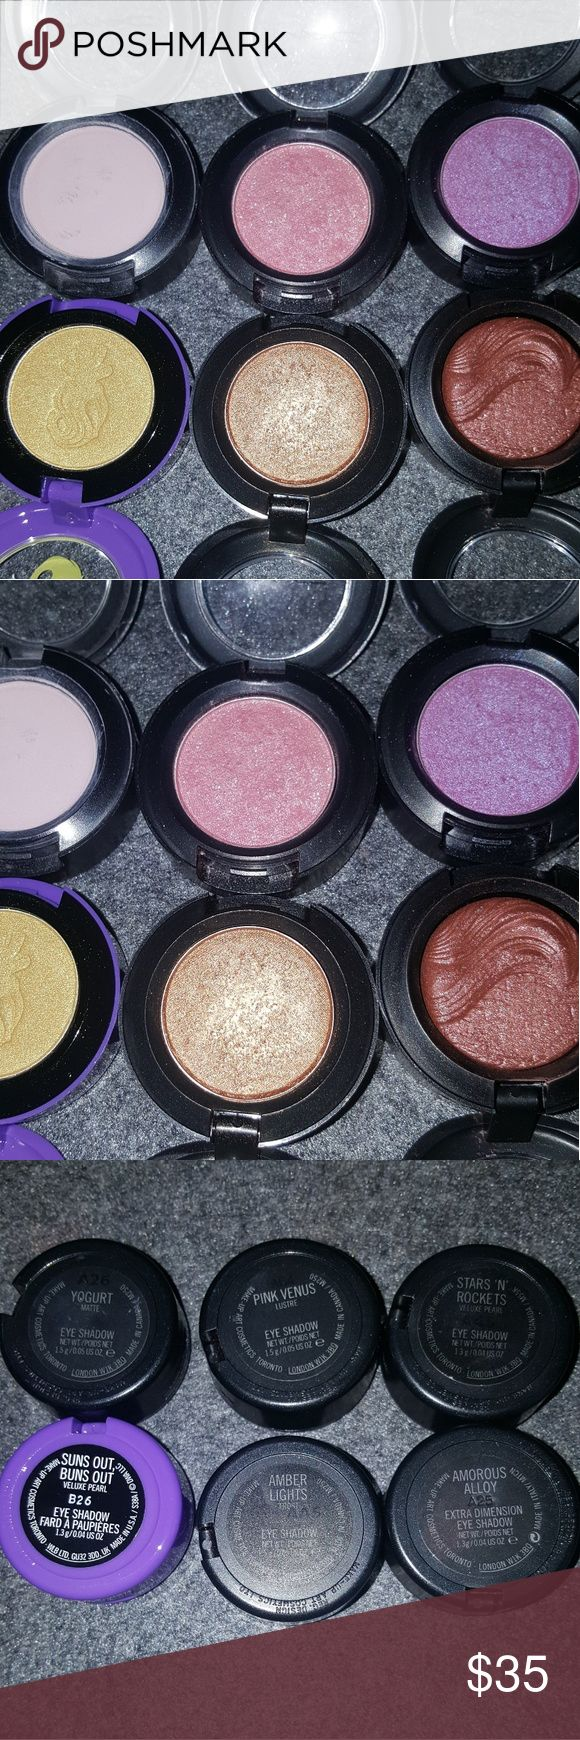 MAC Eyeshadow Singles Bundle EUC MAC Cosmetics eyeshadow singles bundle. All authentic, purchased at MAC retailers. All are hardly used and sanitized, none have even come close to pan. Will not separate, will not trade. Shades are Yogurt, Pink Venus, Stars and Rockets, Suns Out Buns Out, Amber Lights, and Amourous Alloy. Thank you! MAC Cosmetics Makeup